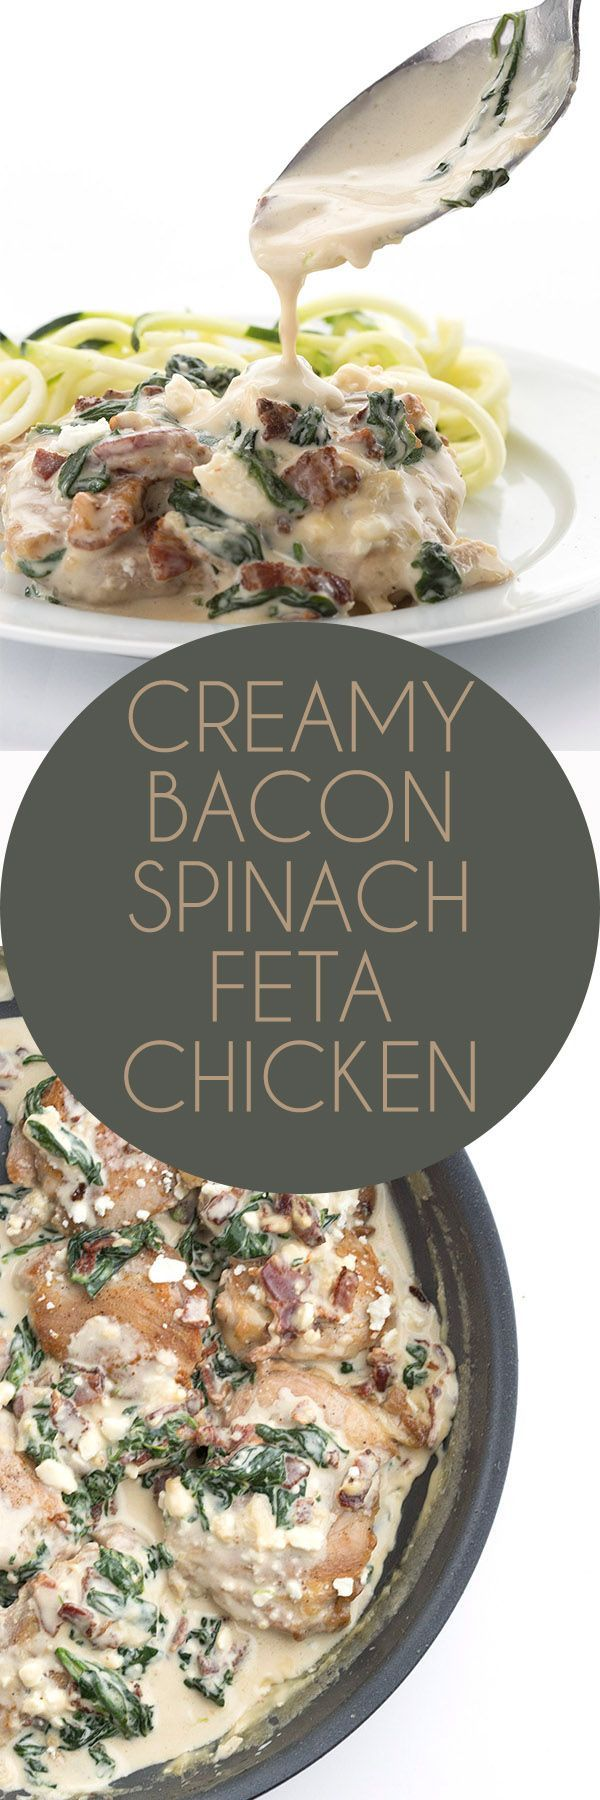 This easy keto skillet chicken recipe will knock your socks off. So creamy and delicious, with bacon, spinach, and feta. Serve over zucchini noodles for the ultimate low carb dinner. via @dreamaboutf (Low Carb Dinner)